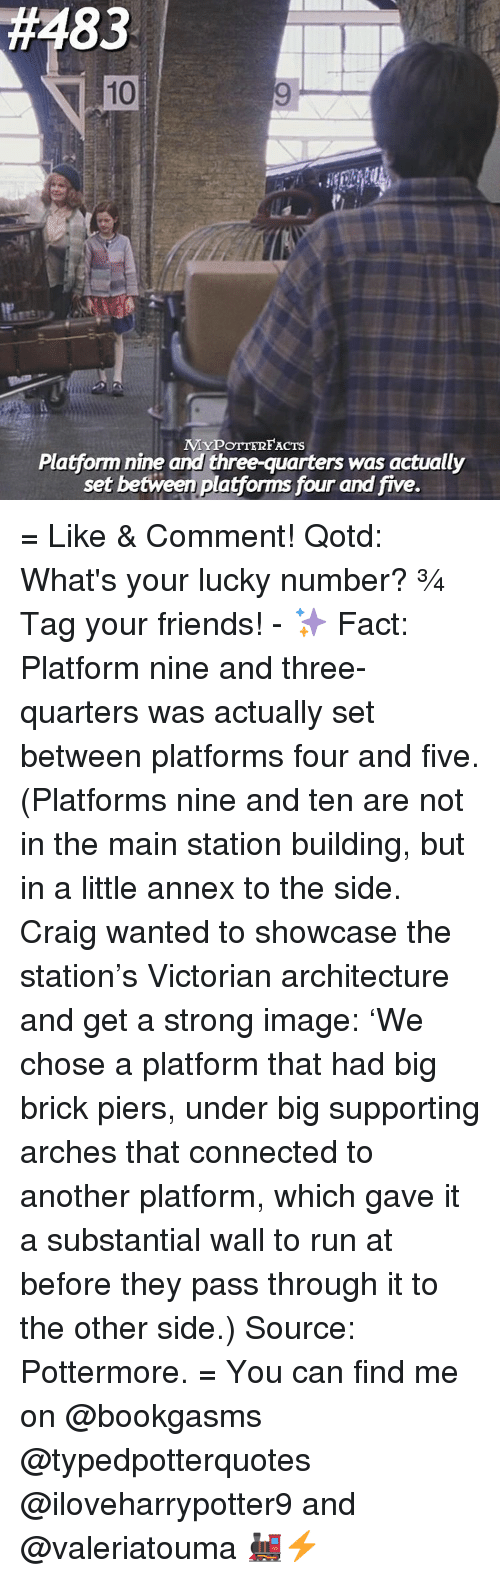 Memes, Connected, and Craig: 83  10  MYPOTTERFACTs  Platform nine and three-quarters was actually  set between  plafforms four and five. = Like & Comment! Qotd: What's your lucky number? ❾¾ Tag your friends! - ✨ Fact: Platform nine and three-quarters was actually set between platforms four and five. (Platforms nine and ten are not in the main station building, but in a little annex to the side. Craig wanted to showcase the station's Victorian architecture and get a strong image: 'We chose a platform that had big brick piers, under big supporting arches that connected to another platform, which gave it a substantial wall to run at before they pass through it to the other side.) Source: Pottermore. = You can find me on @bookgasms @typedpotterquotes @iloveharrypotter9 and @valeriatouma 🚂⚡️